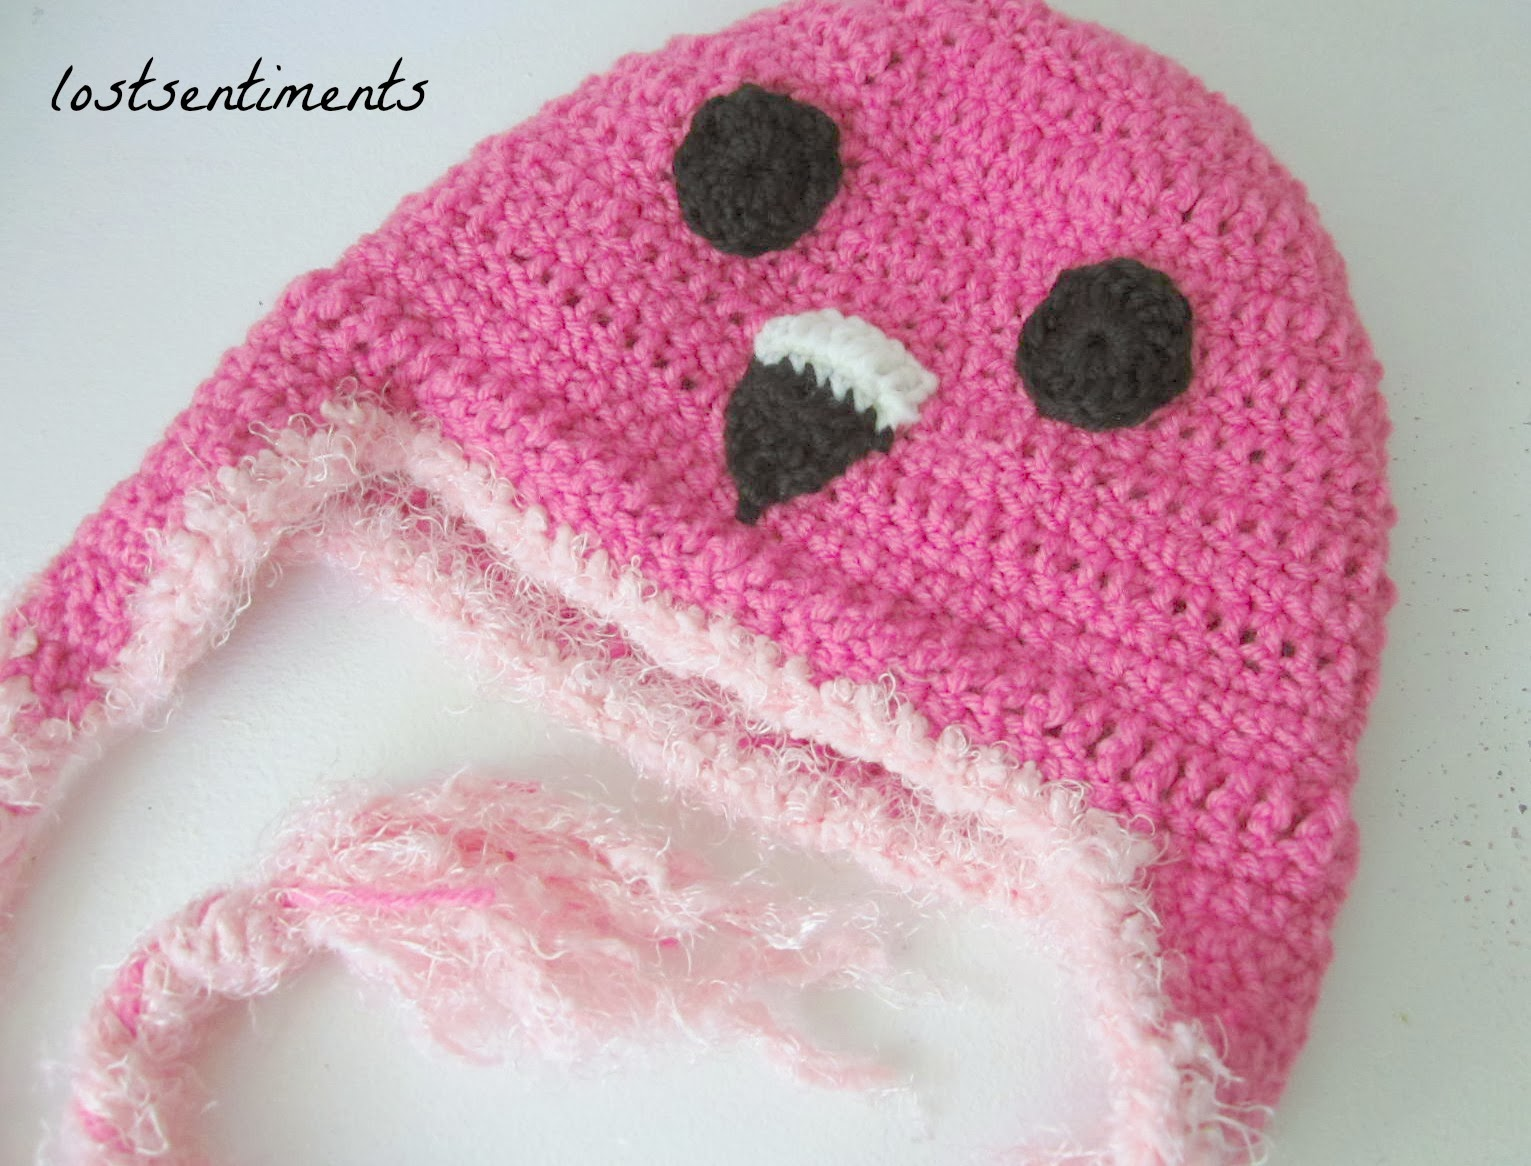 lostsentiments: Crocheted Adult Flamingo Hat - Free Crochet Pattern